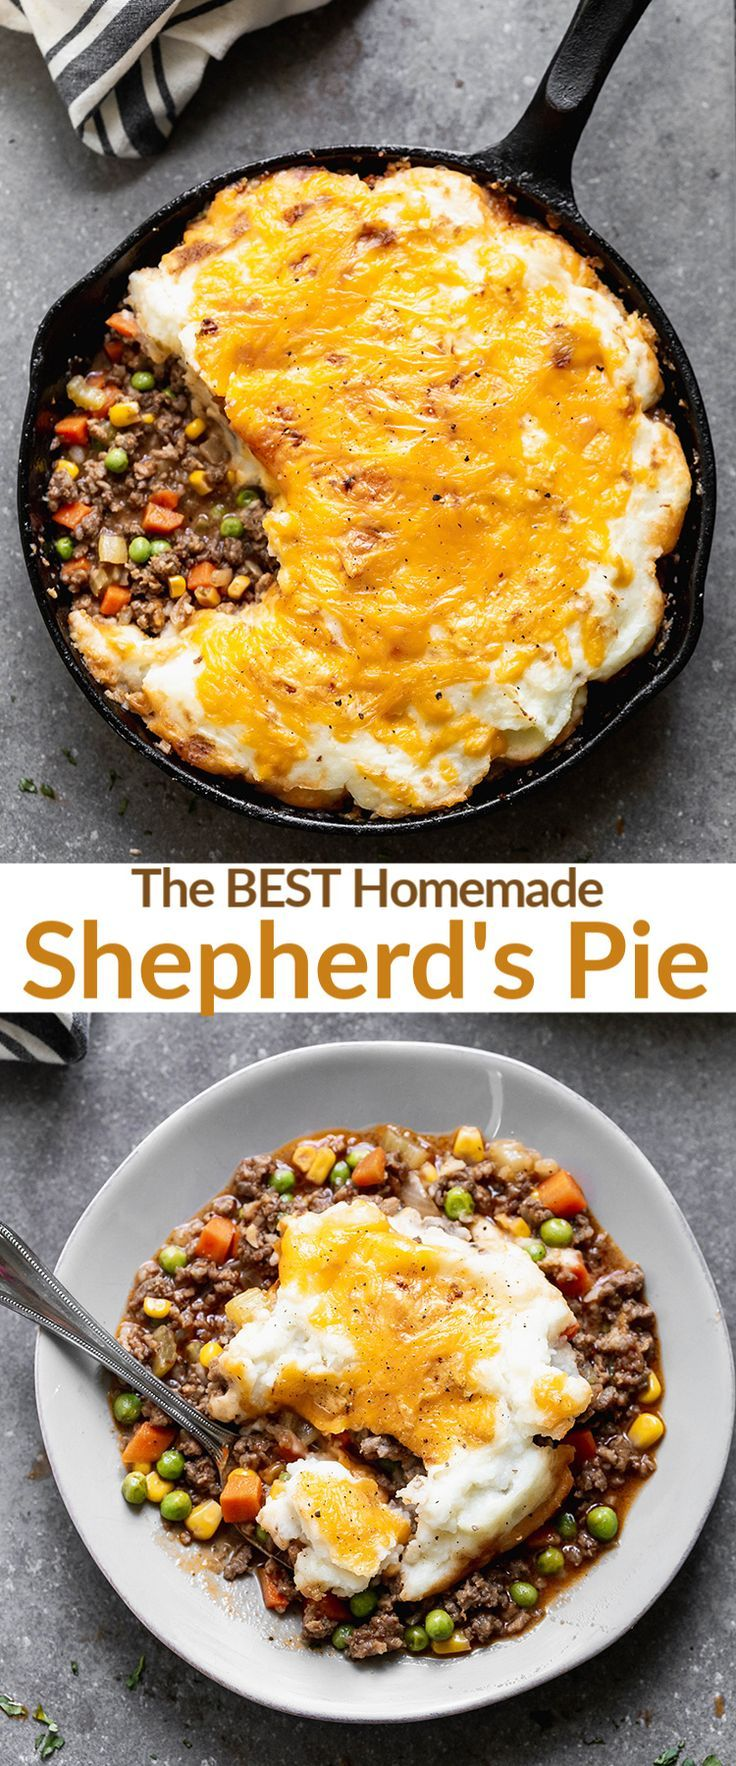 Easy Cottage Pie Made With A Mixture Of Ground Beef Ground Sausage And Mixed Vegetables In A Delicious Gravy And Baked Under A Layer Of Fluffy Mashed Potatoes Recipe Cottage